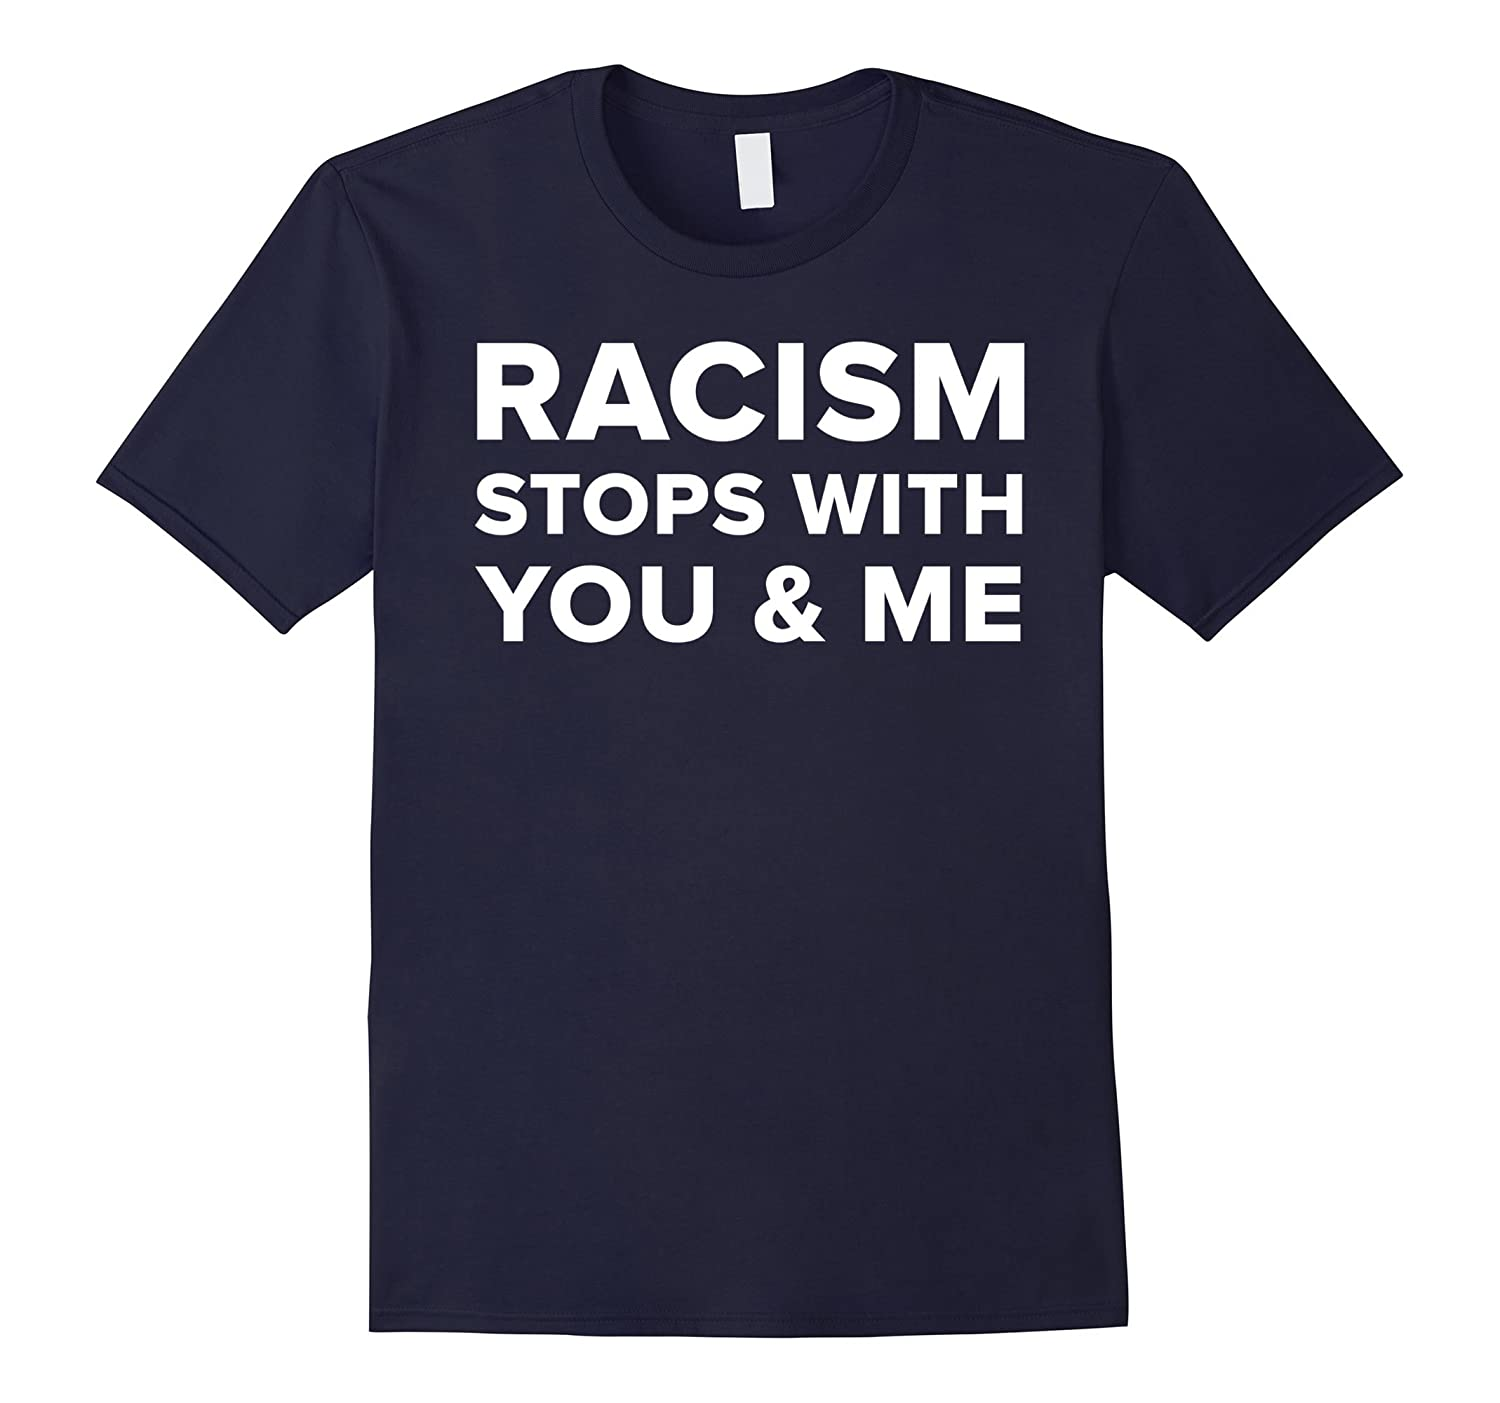 Anti-Racism Racism Stops With You & Me End Racism T-shirt-4LVS